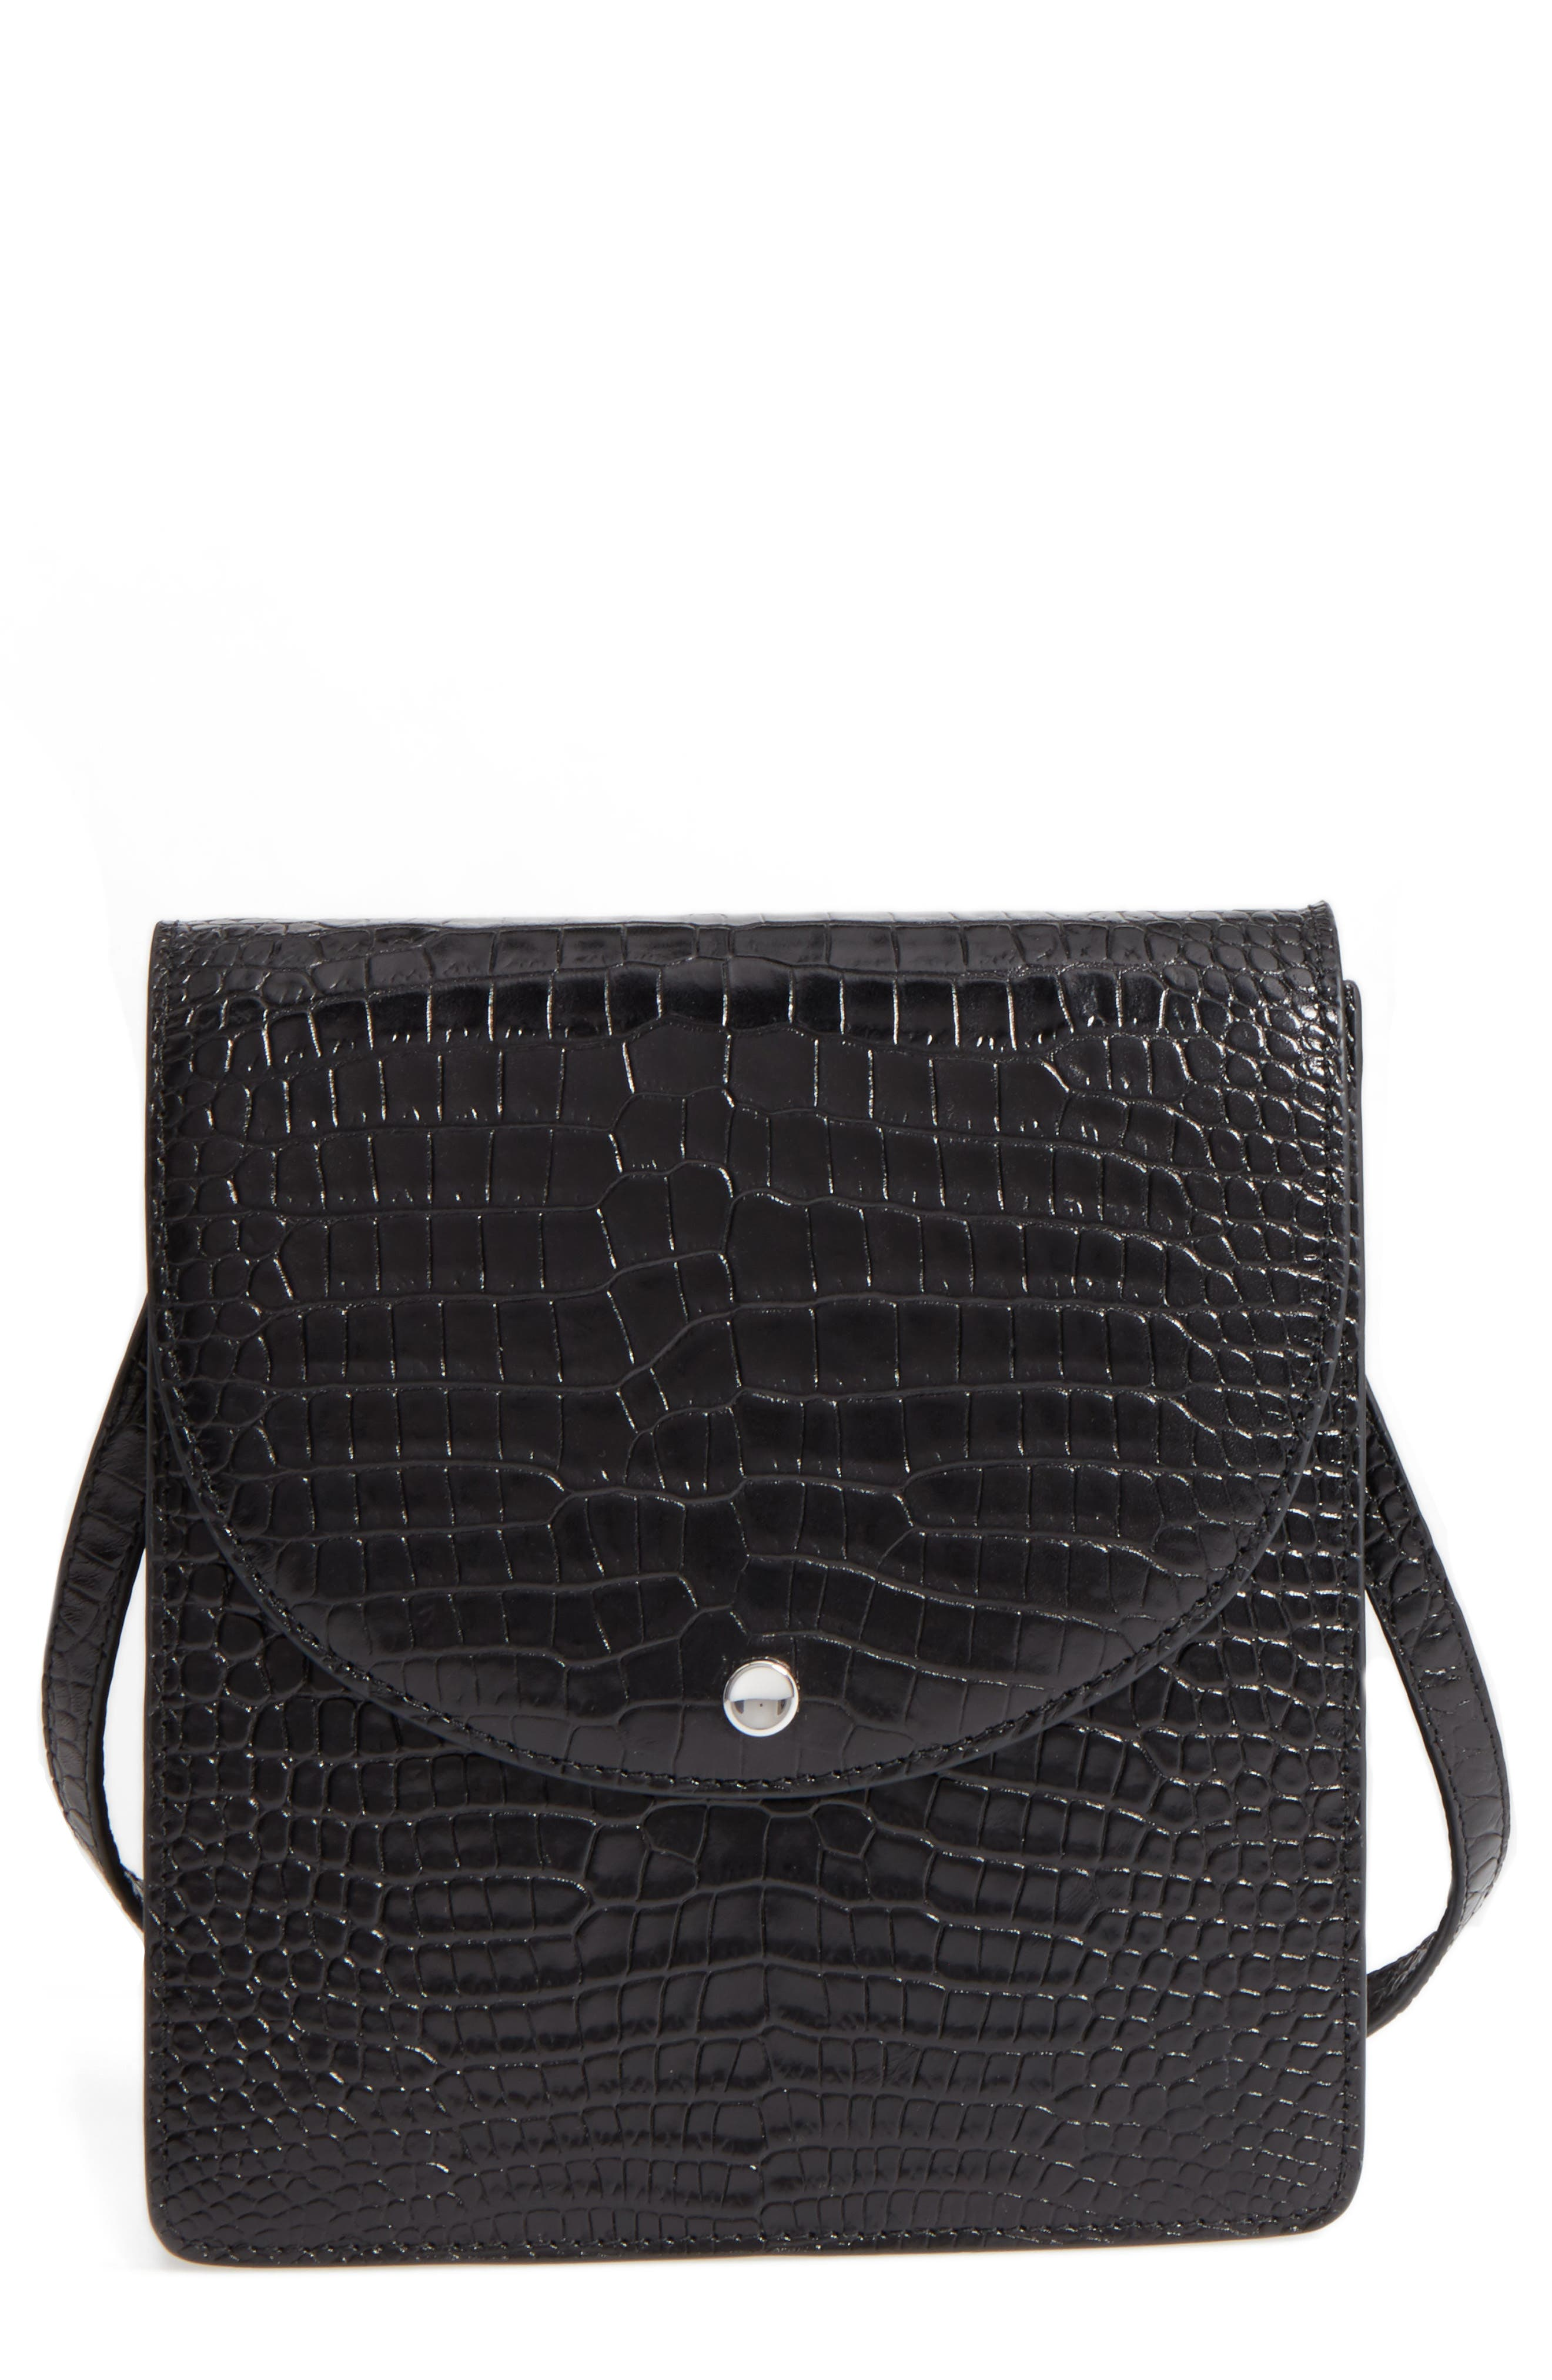 Elizabeth and James Eloise Leather Crossbody Bag